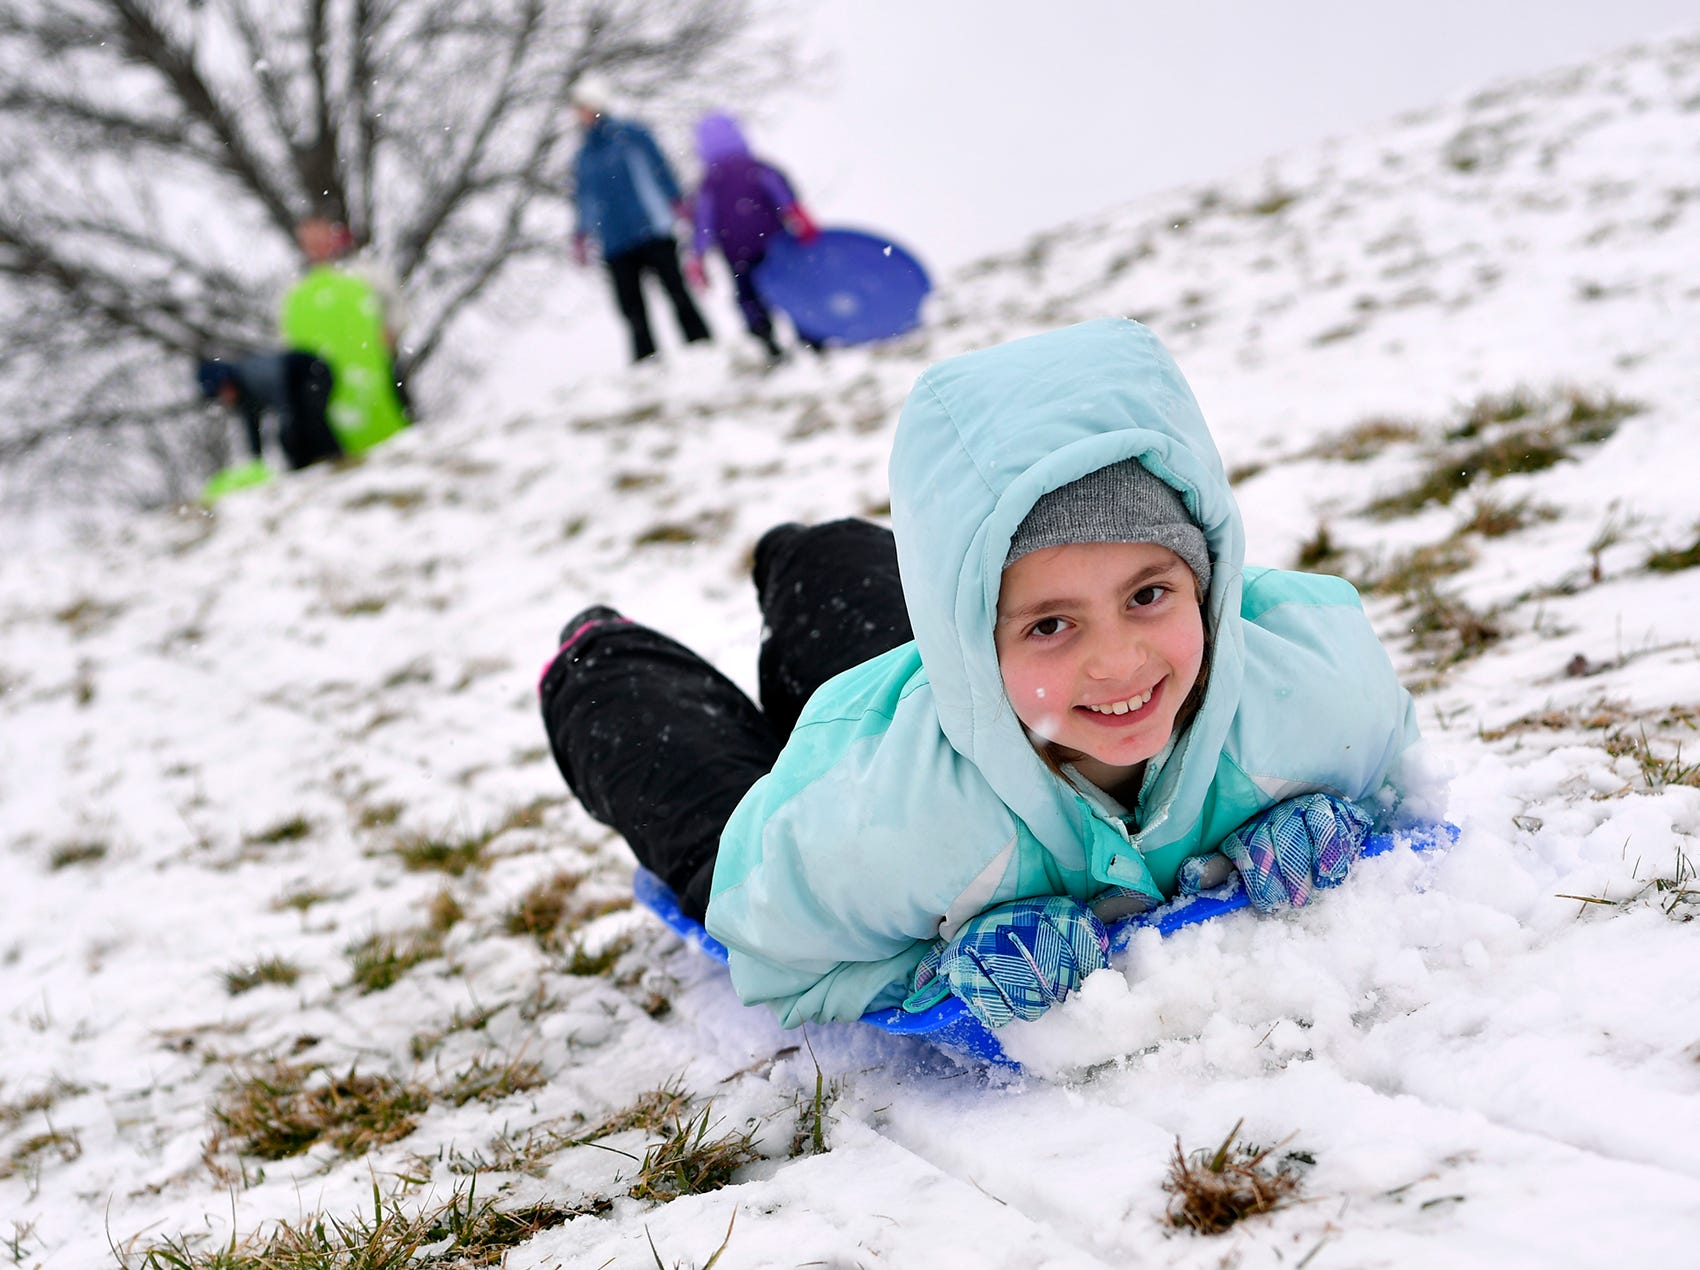 Katelyn Shiffer, 9, enjoys a snow day at Springettsbury Park with her family, Monday, February 11, 2019.